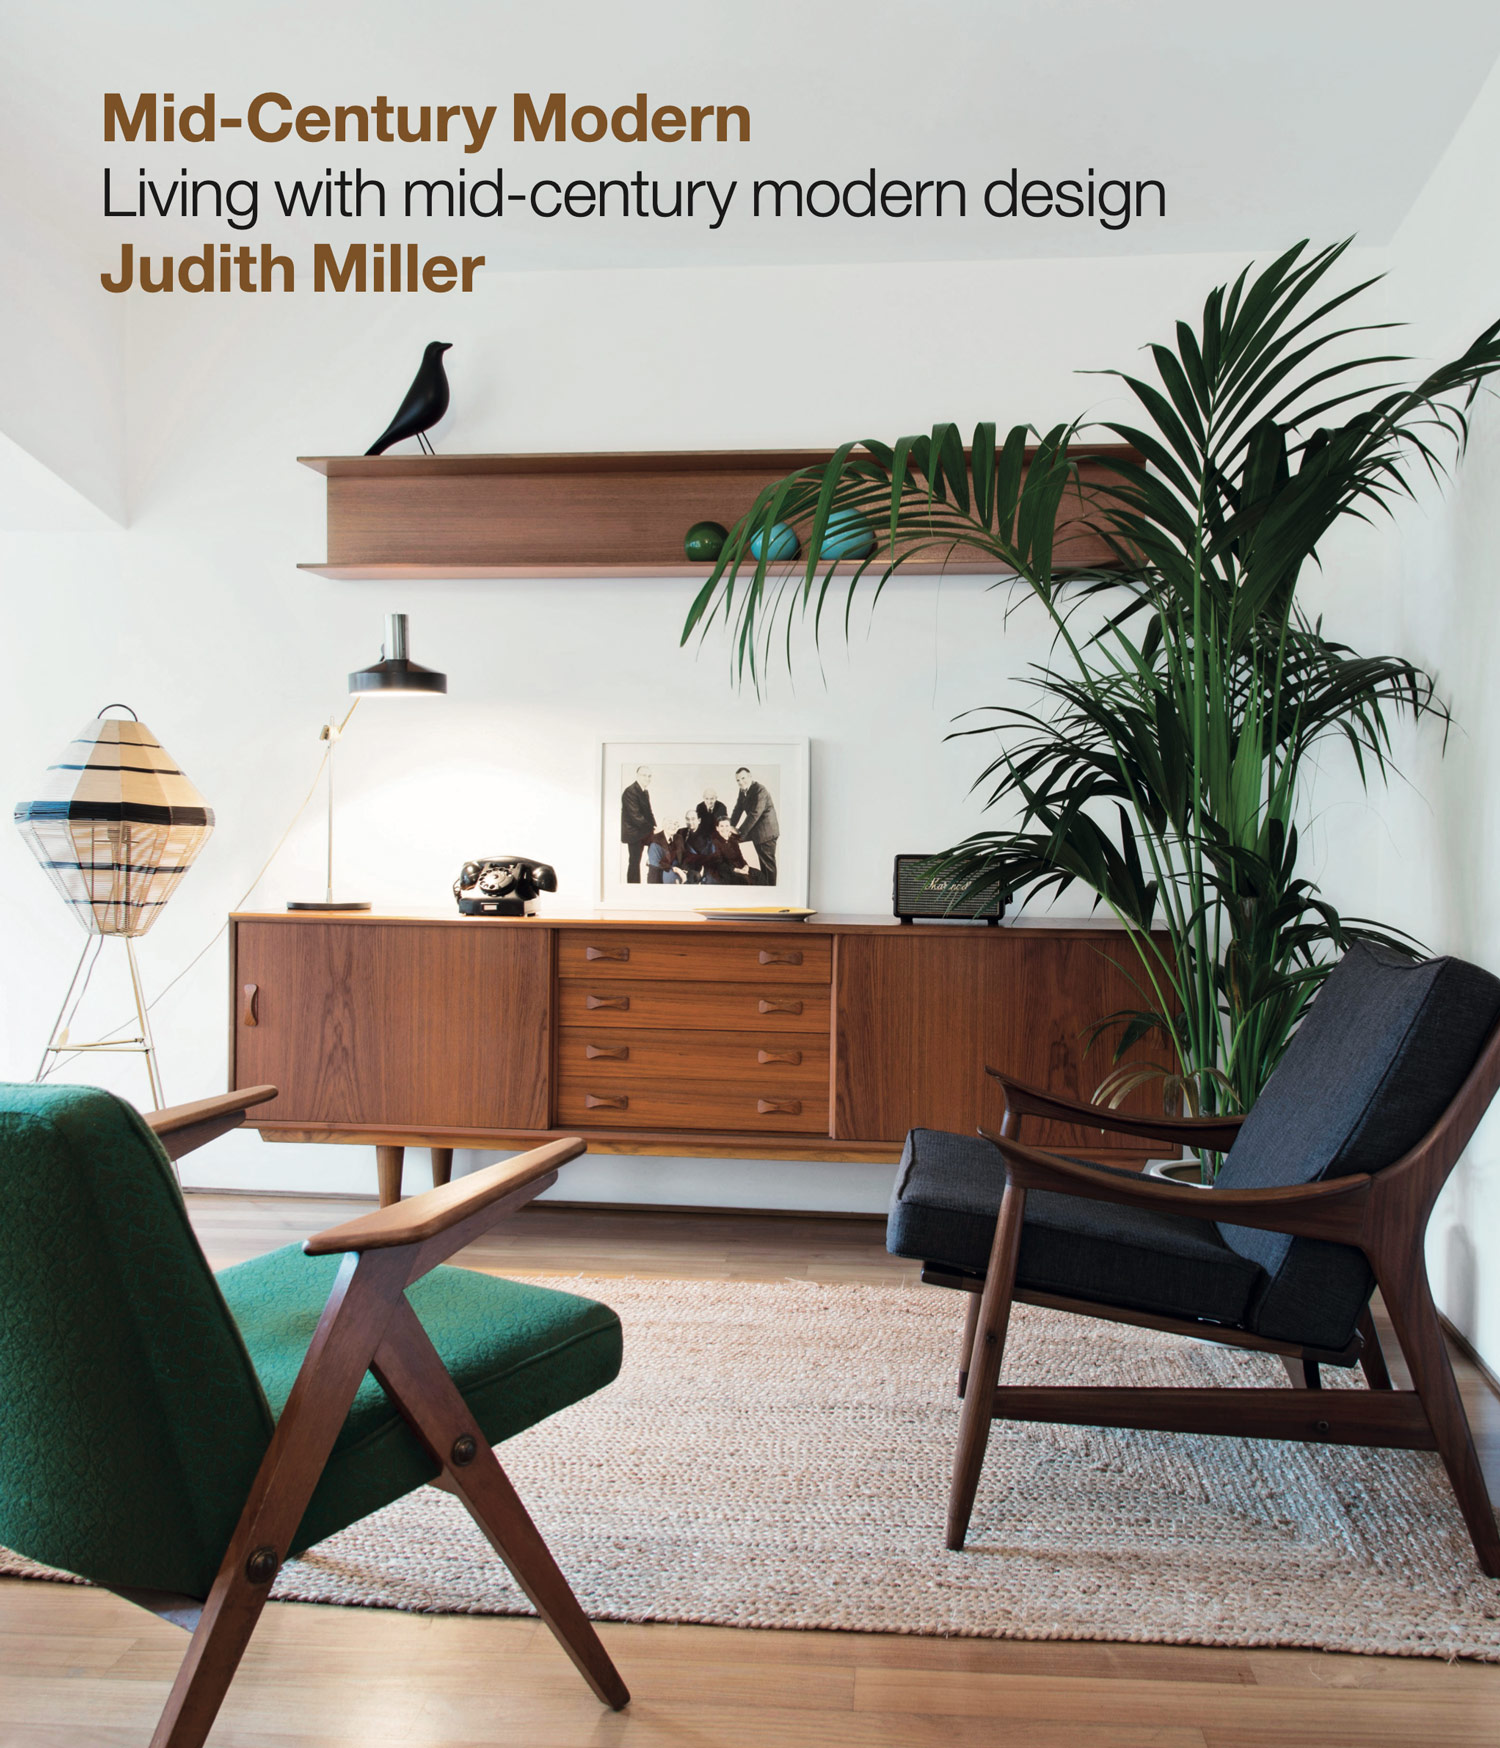 Mid-century modern furniture is often the go-to interiors choice of those in the know, but when the TV show Mad Men hit our screens back in 2007, a new wave of fans fell in love with its alluring aesthetic. Since then it has become an ever-present sight in homes and commercial spaces across the globe.